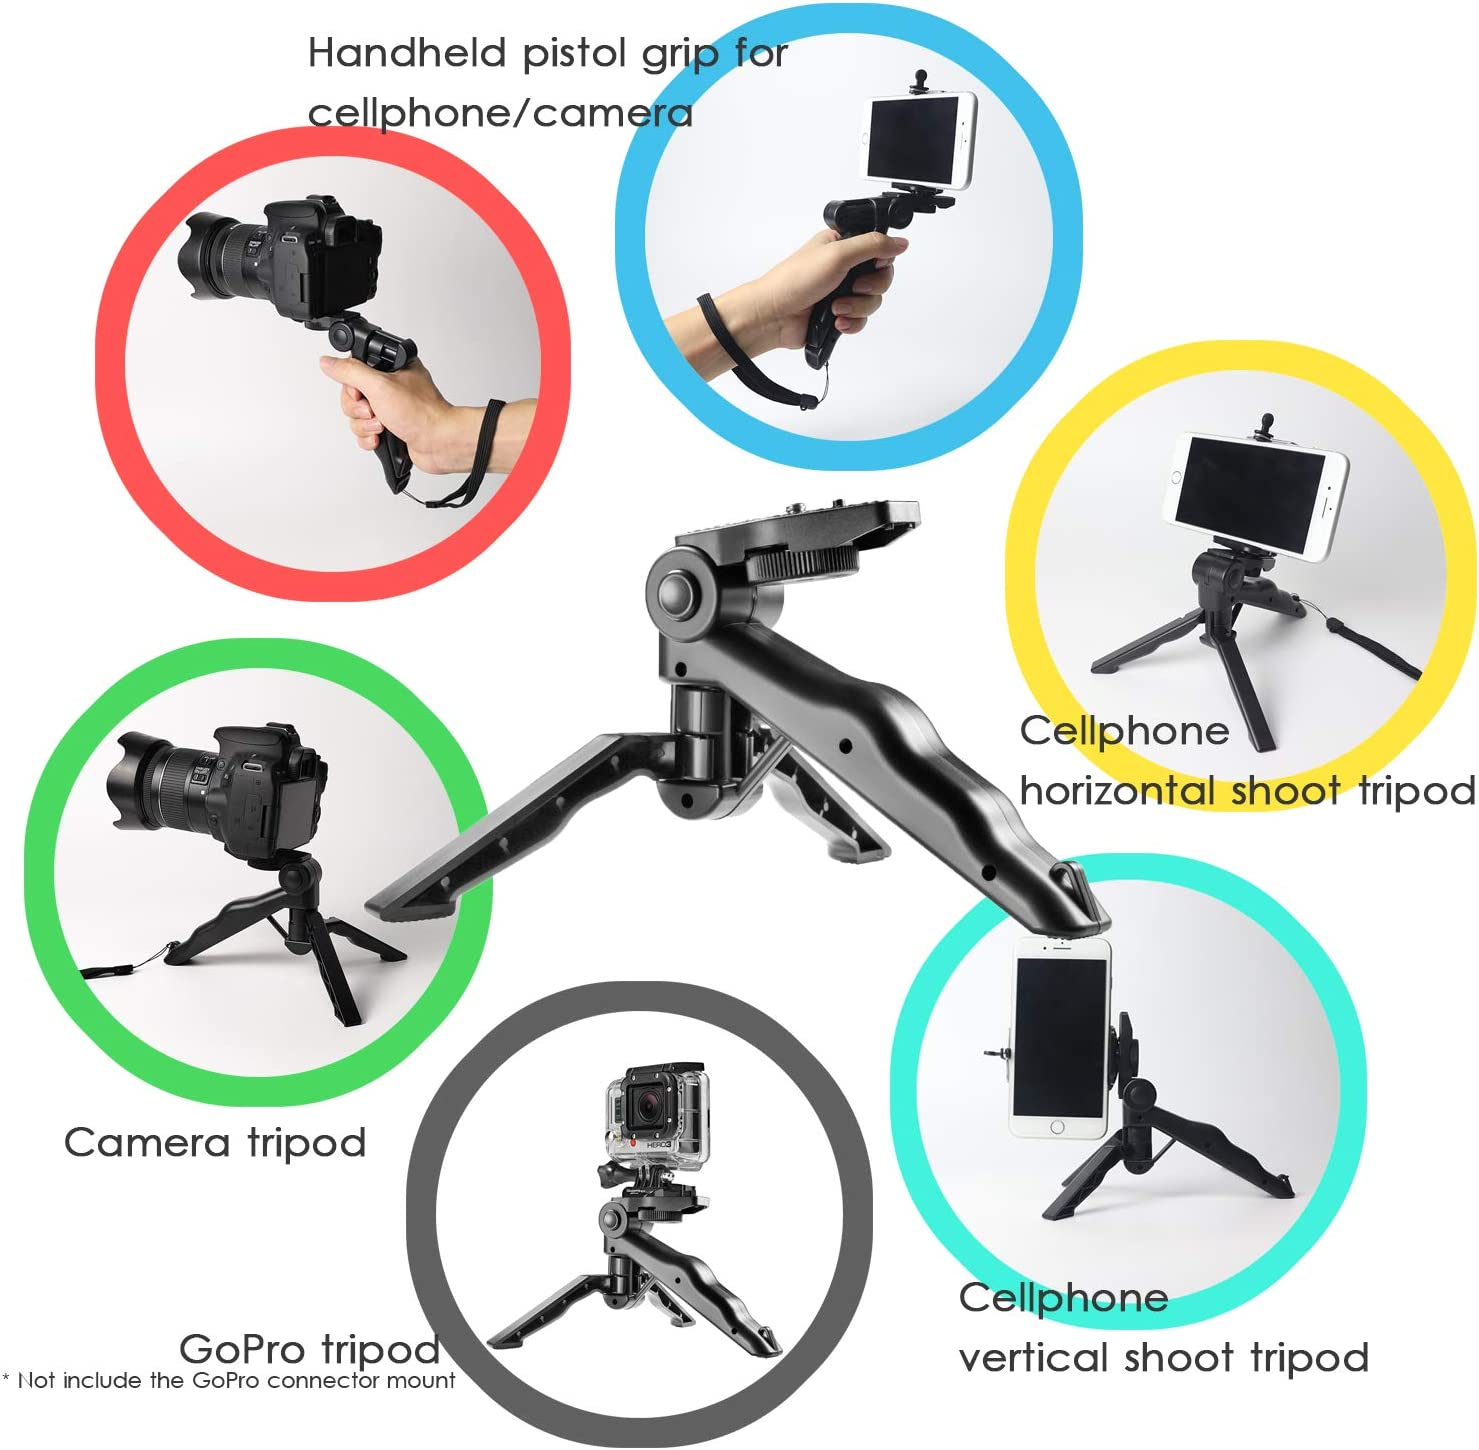 Ezavan Mini Tripod Handheld Grip for Cell Phone and Camera Selfies//Vlogging//Recording Portable Adjustable Cell Phone Desktop Tripod Camera GoPro Stand Holder with Wireless Remote and Universal Clip